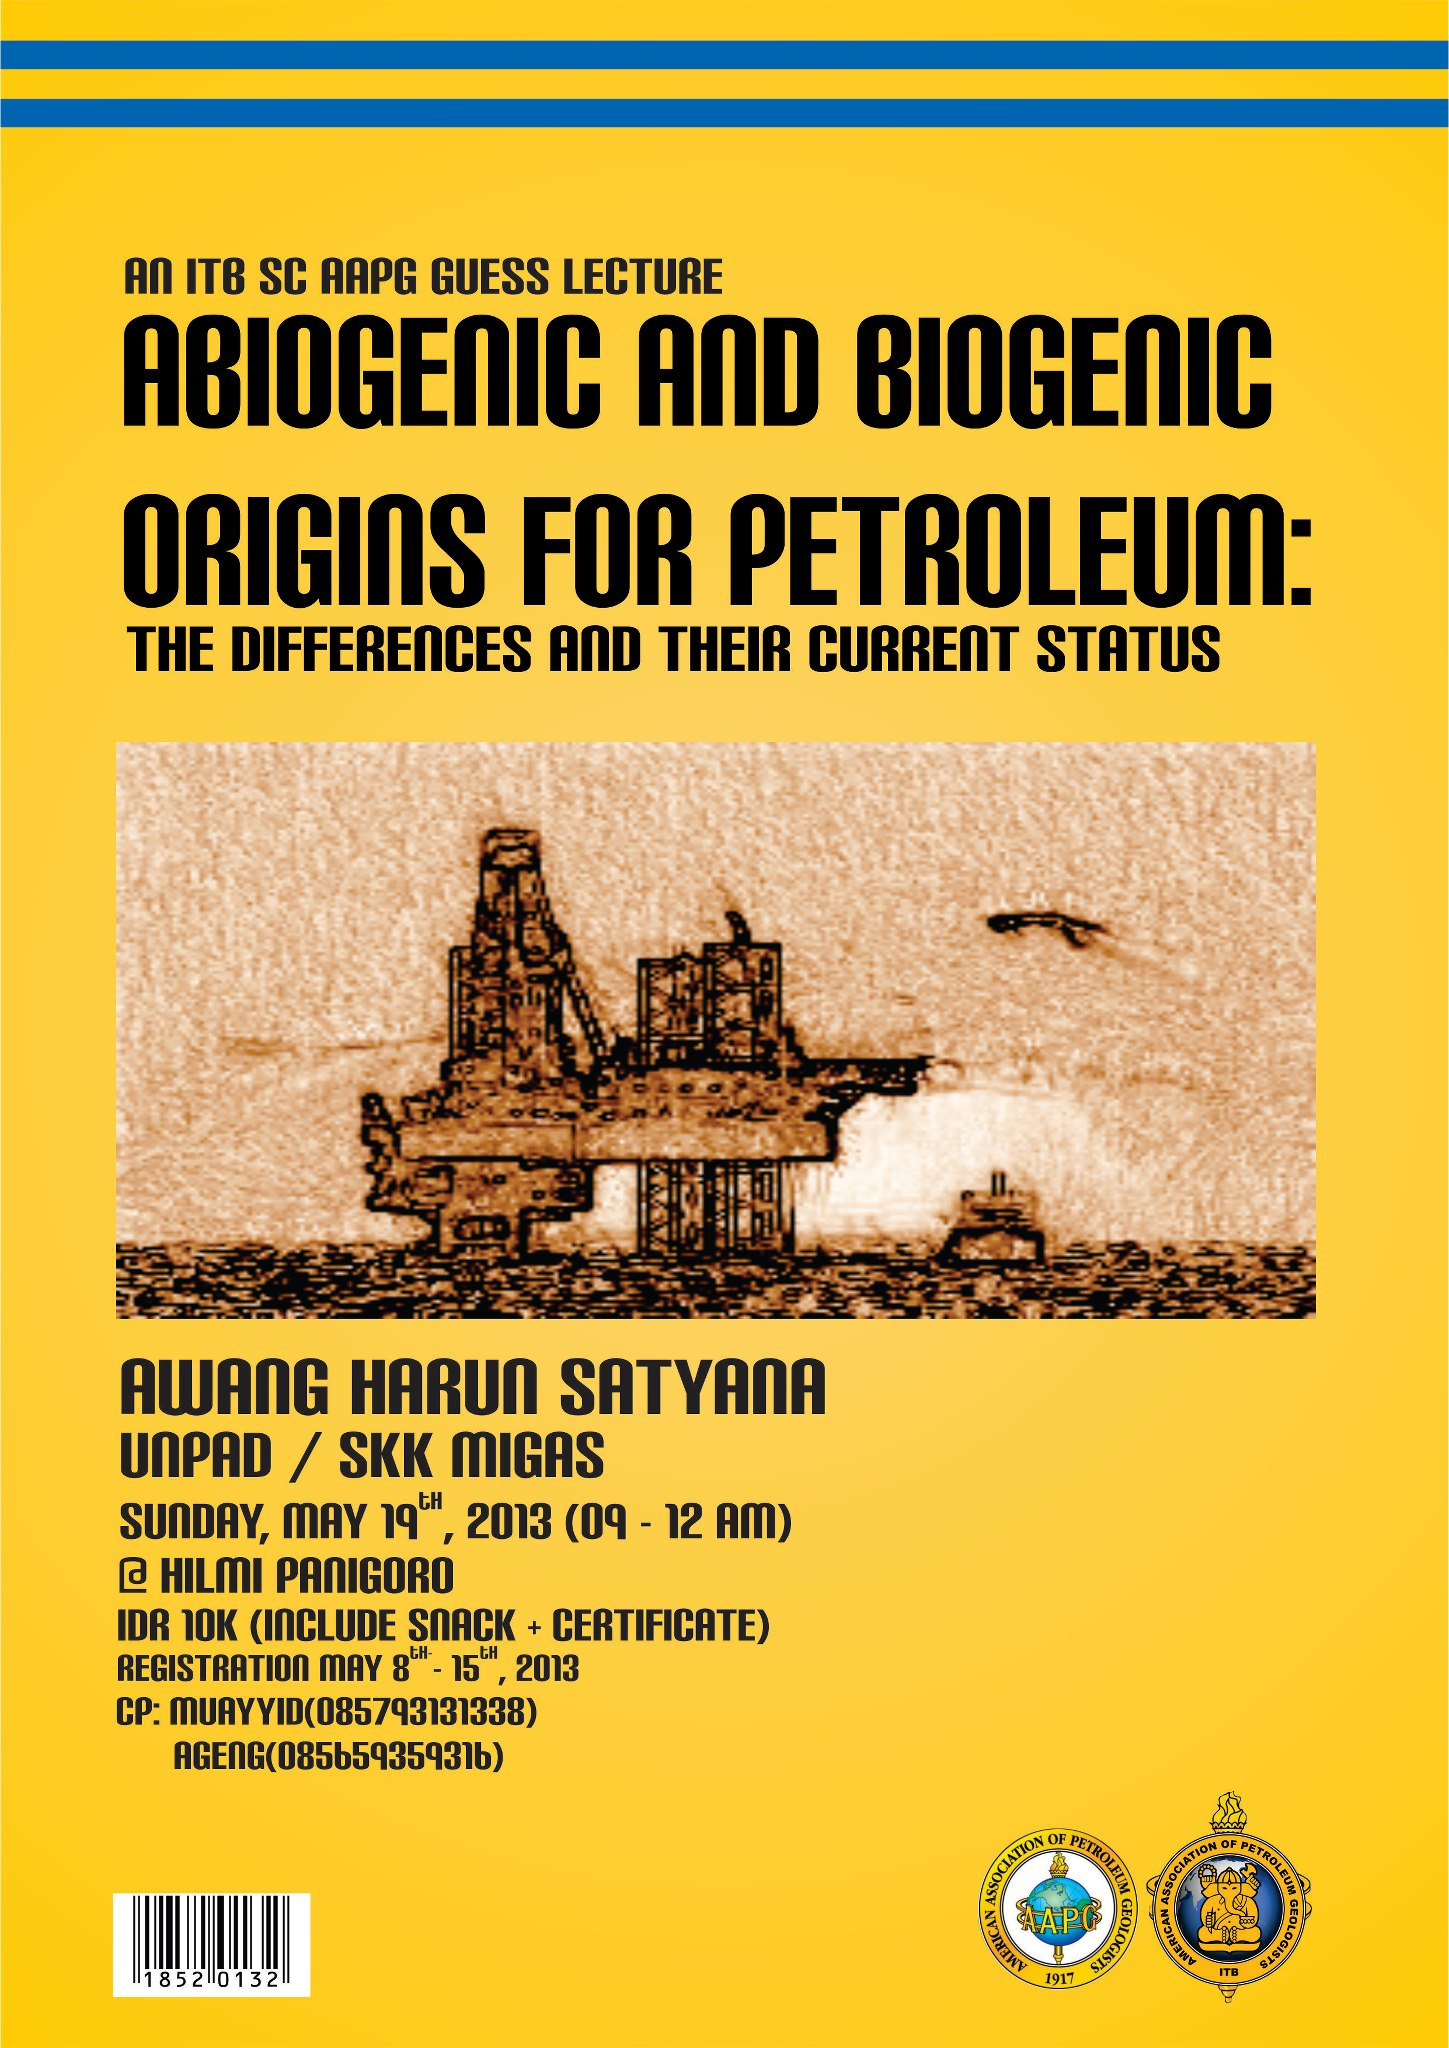 Publication of ABIOGENIC AND BIOGENIC ORIGINS OF PETROLEUM: THE DIFFERENCES AND THEIR CURRENT STATUS LECTURE